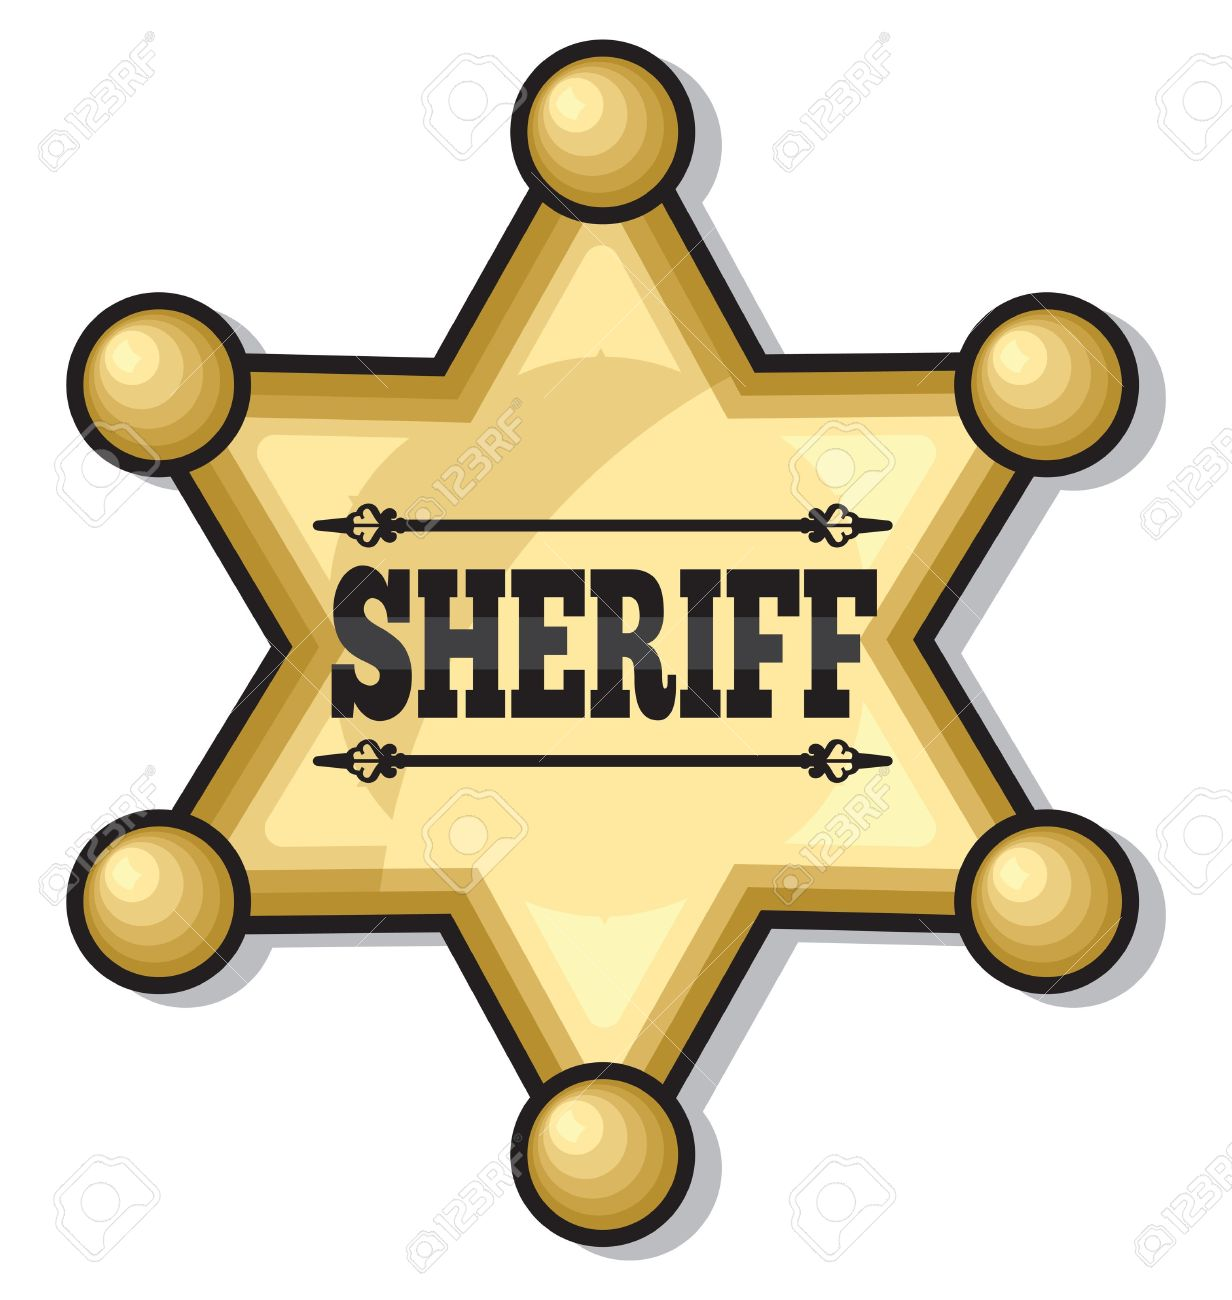 sheriff badge royalty free cliparts vectors and stock illustration rh 123rf com sheriff badge vector free download county sheriff badge vector